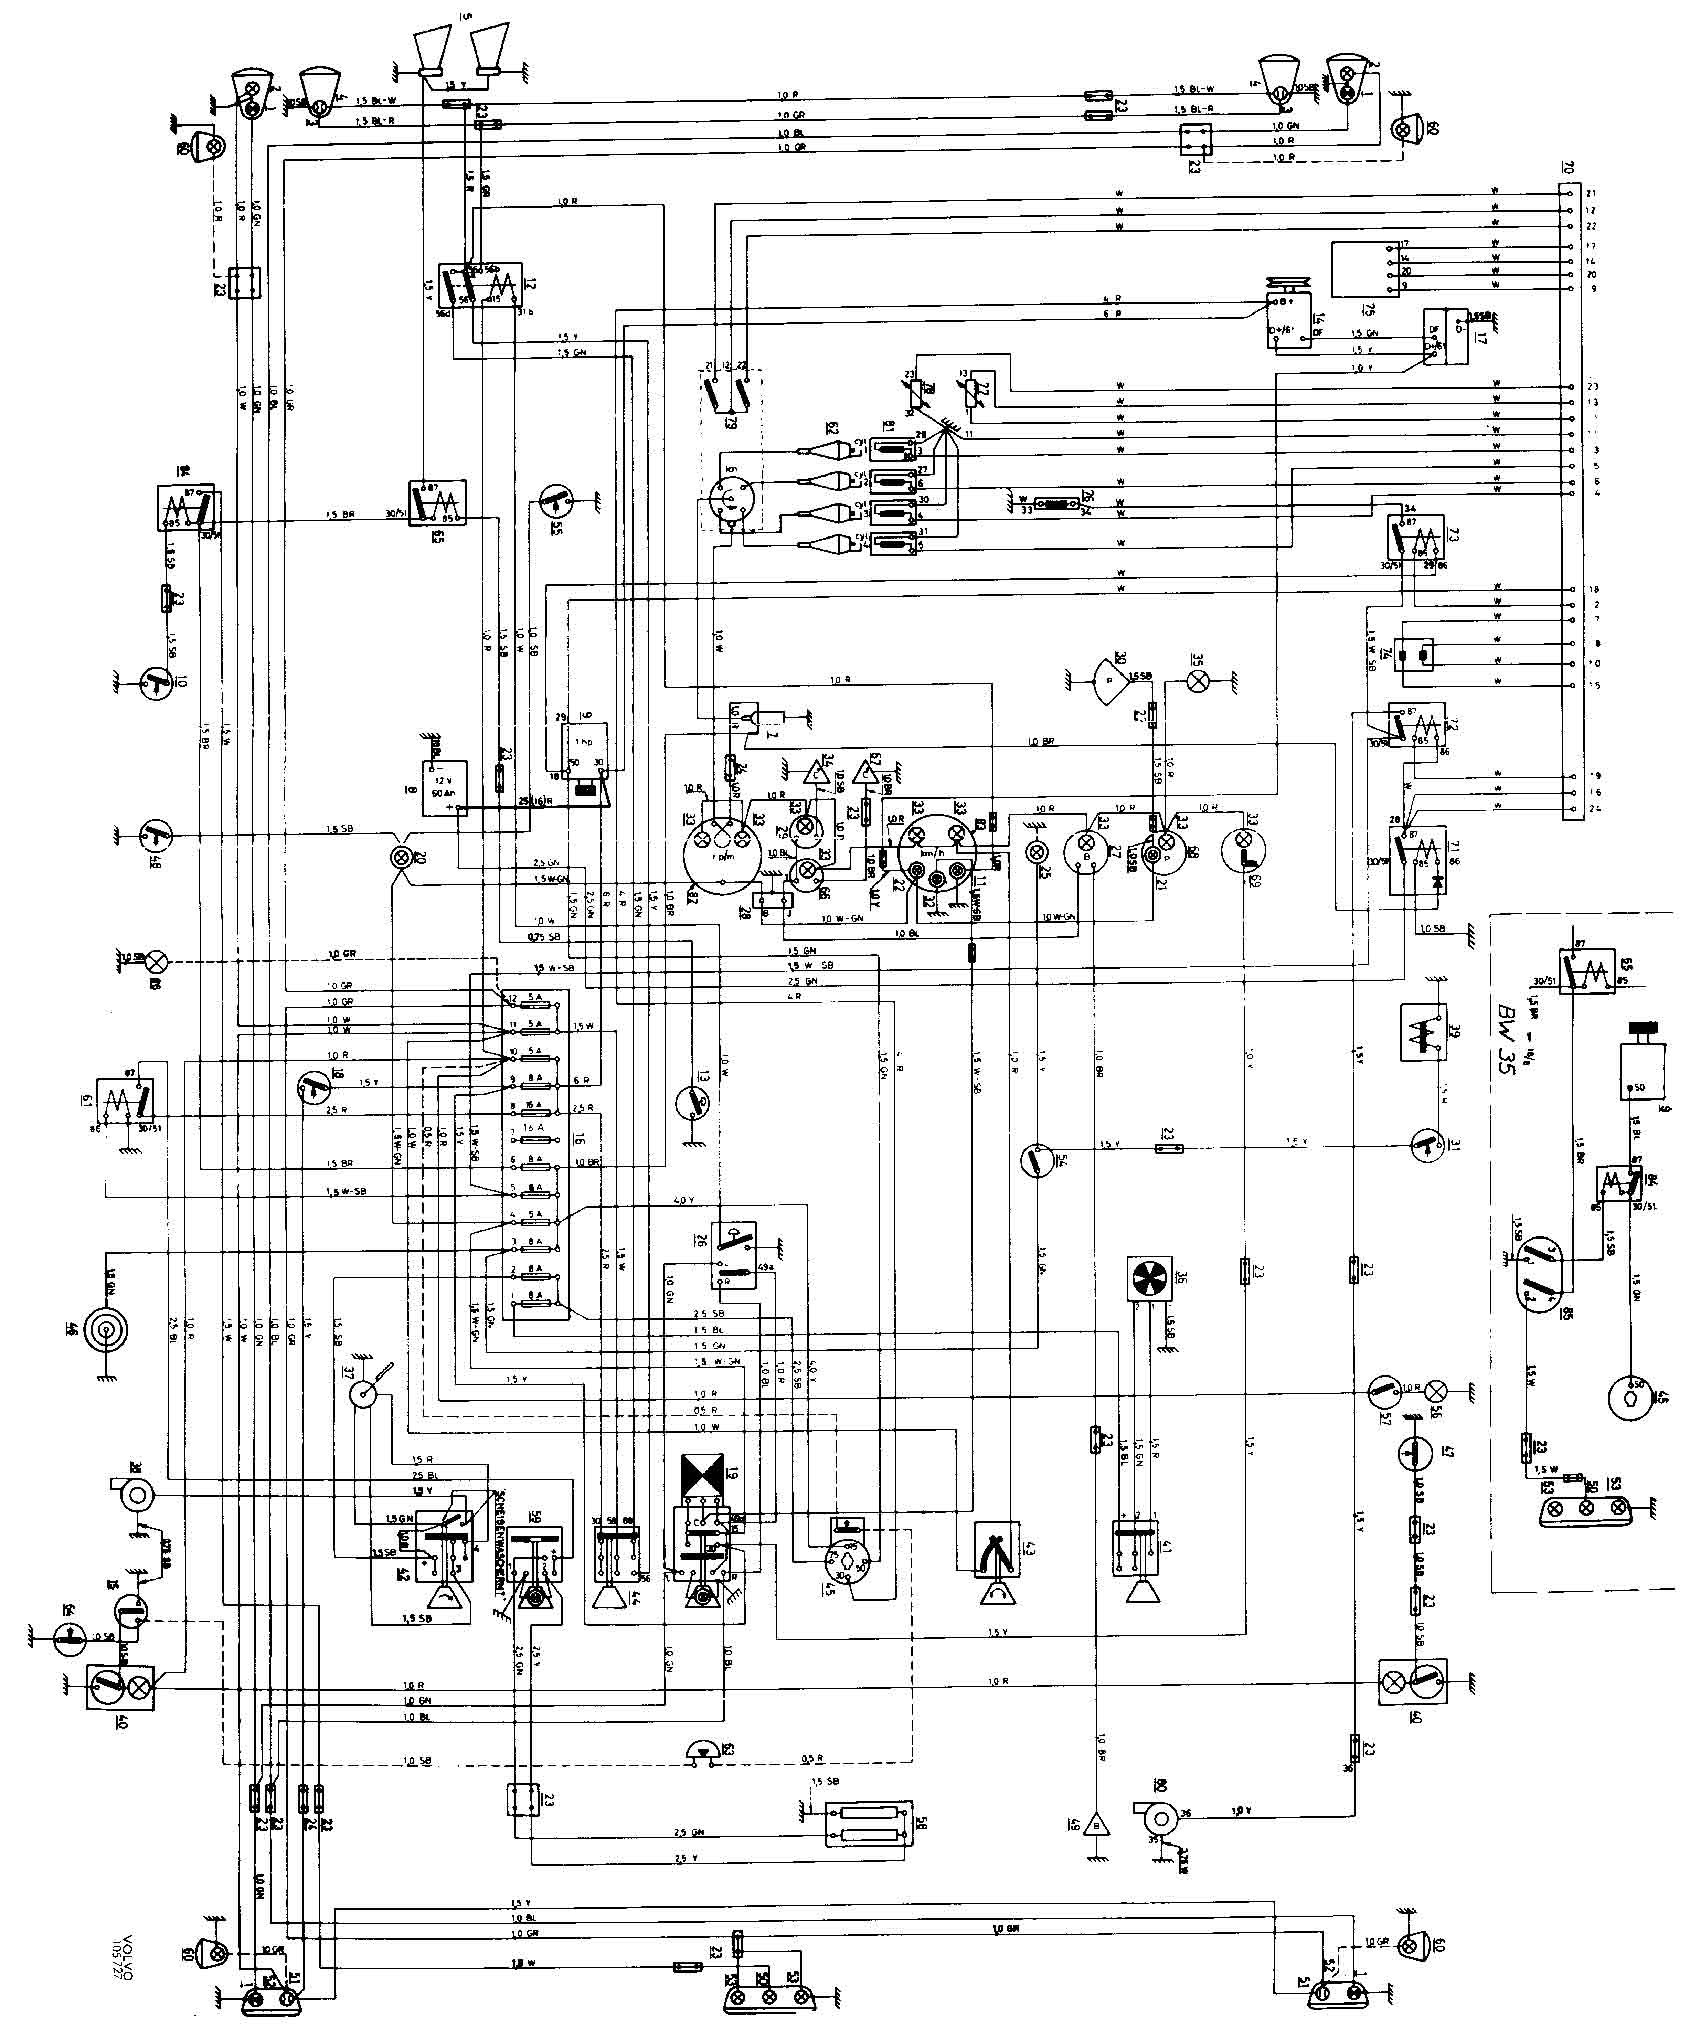 1998 volvo v70 engine diagram volvo 164 engine diagram #5